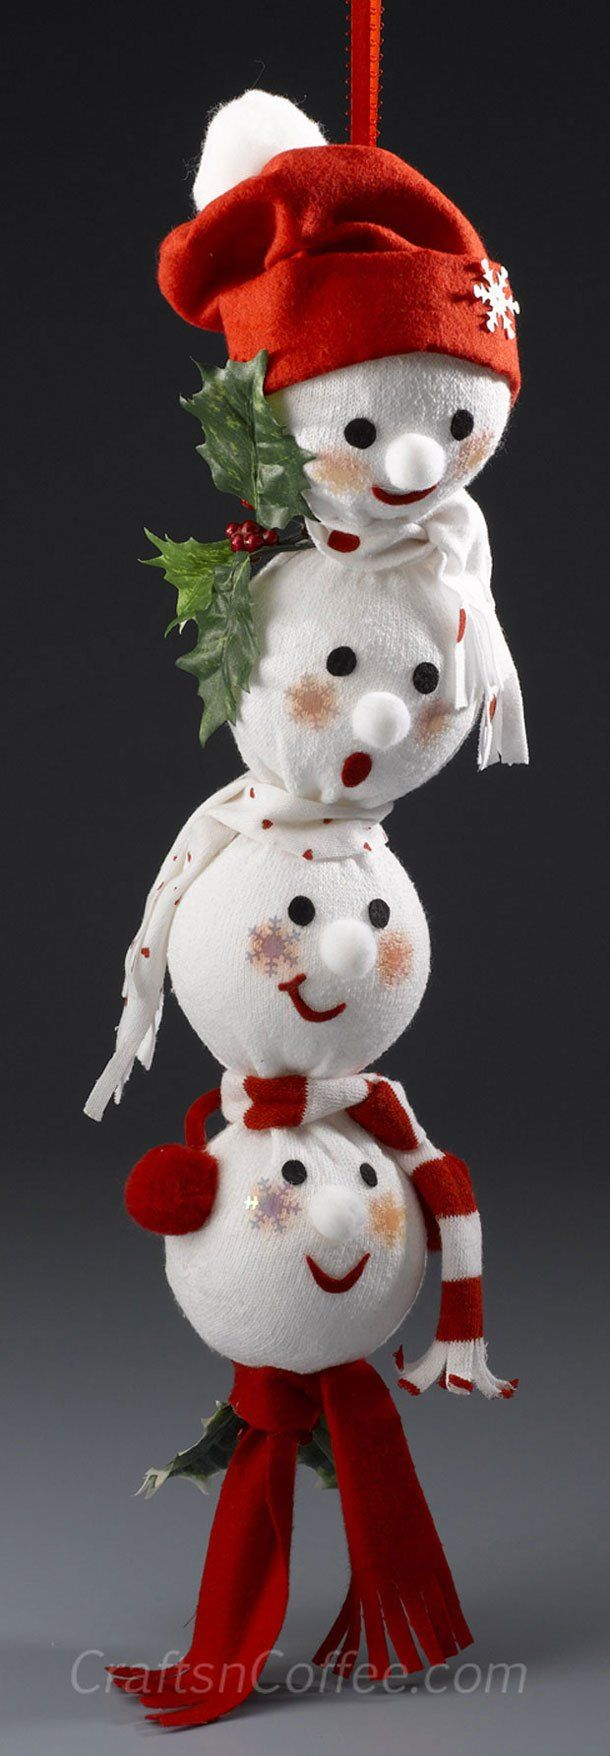 snowman diy craft | DIY a snowman from an old athletic sock to make a recycled snowman ...